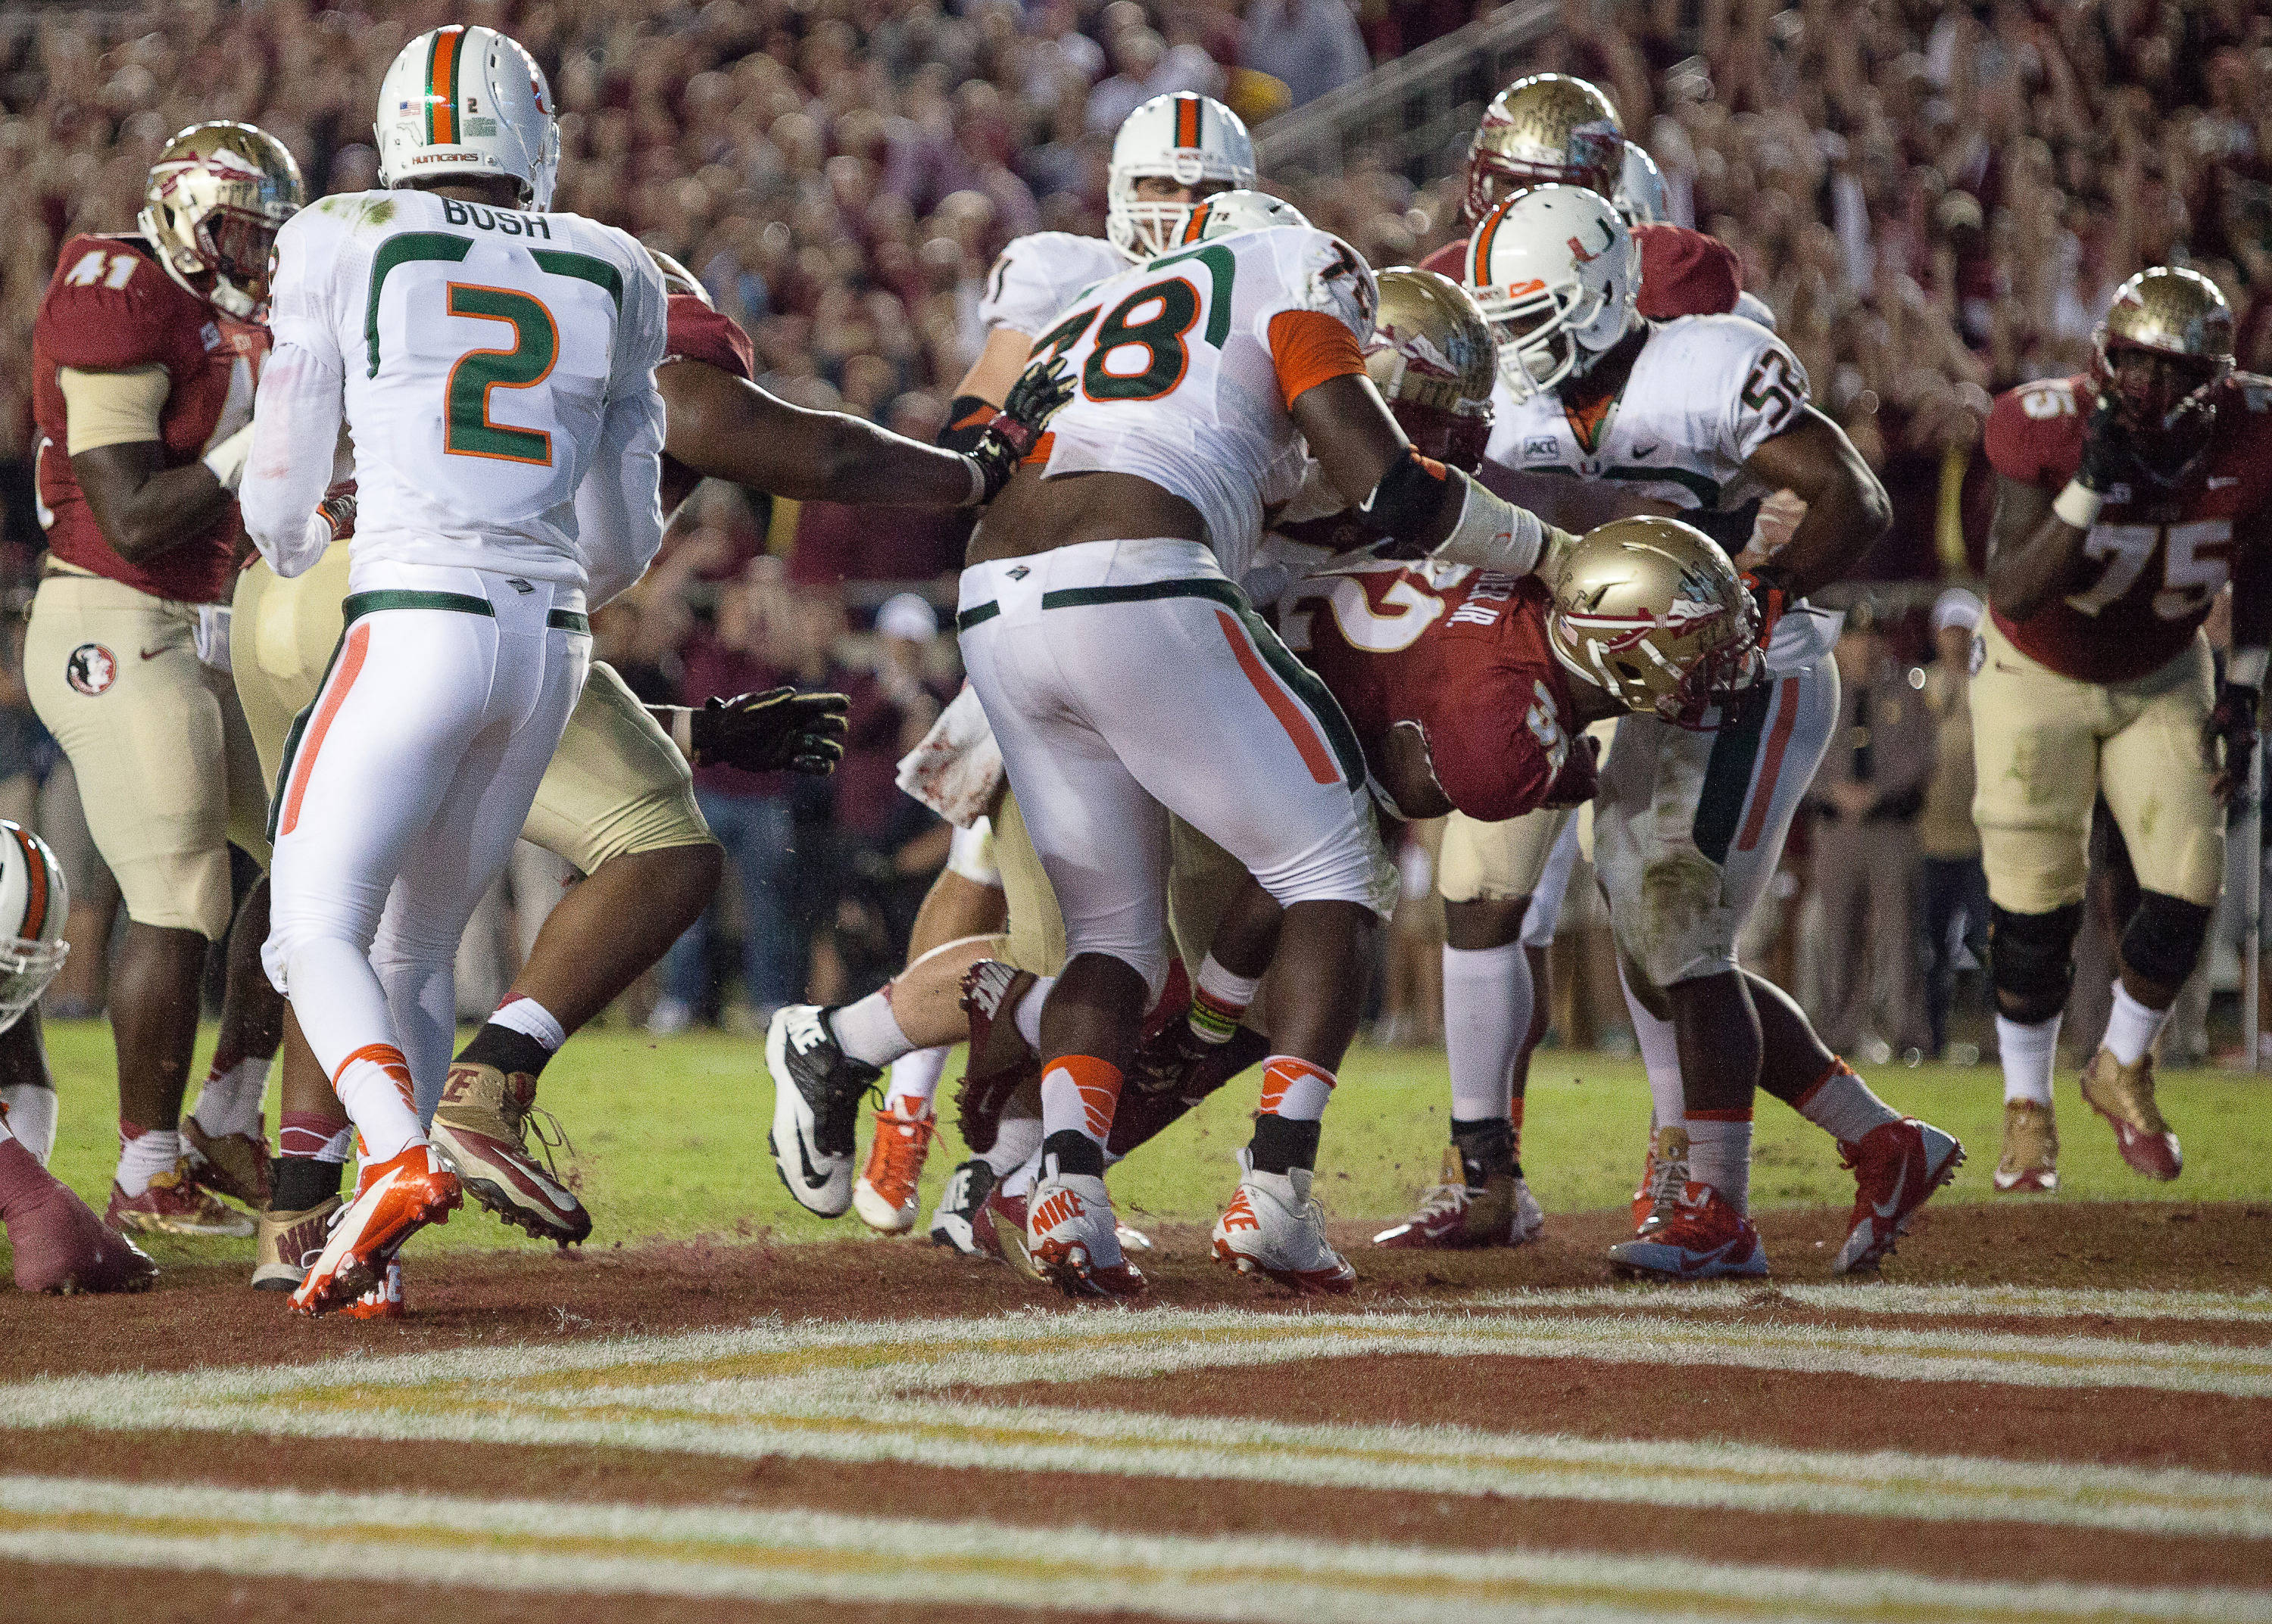 James Wilder, Jr. (32) makes a touchdown during FSU football's 41-14 win over Miami on Saturday, November 2, 2013 in Tallahassee, Fla. Photo by Michael Schwarz.